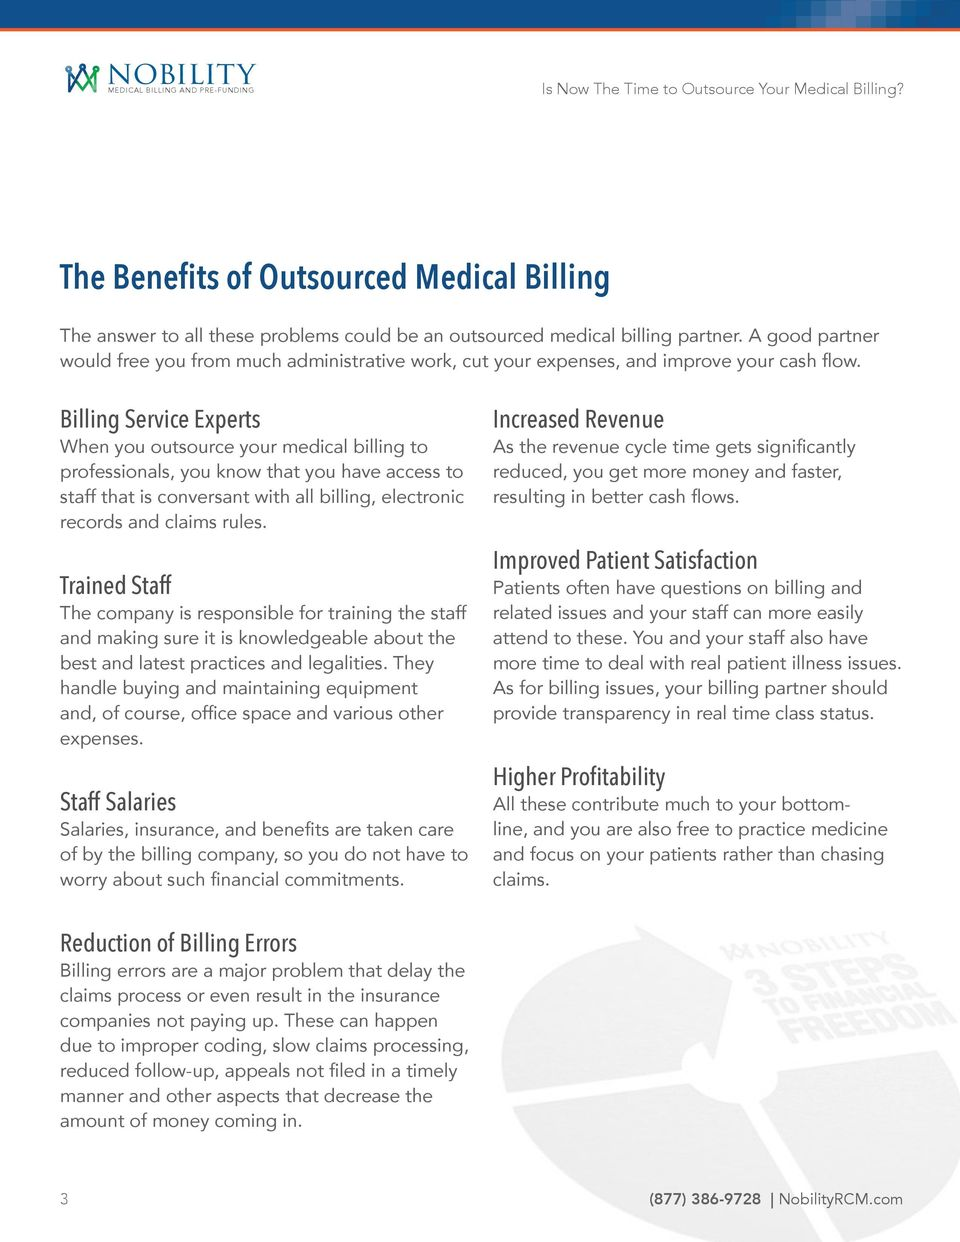 Billing Service Experts When you outsource your medical billing to professionals, you know that you have access to staff that is conversant with all billing, electronic records and claims rules.